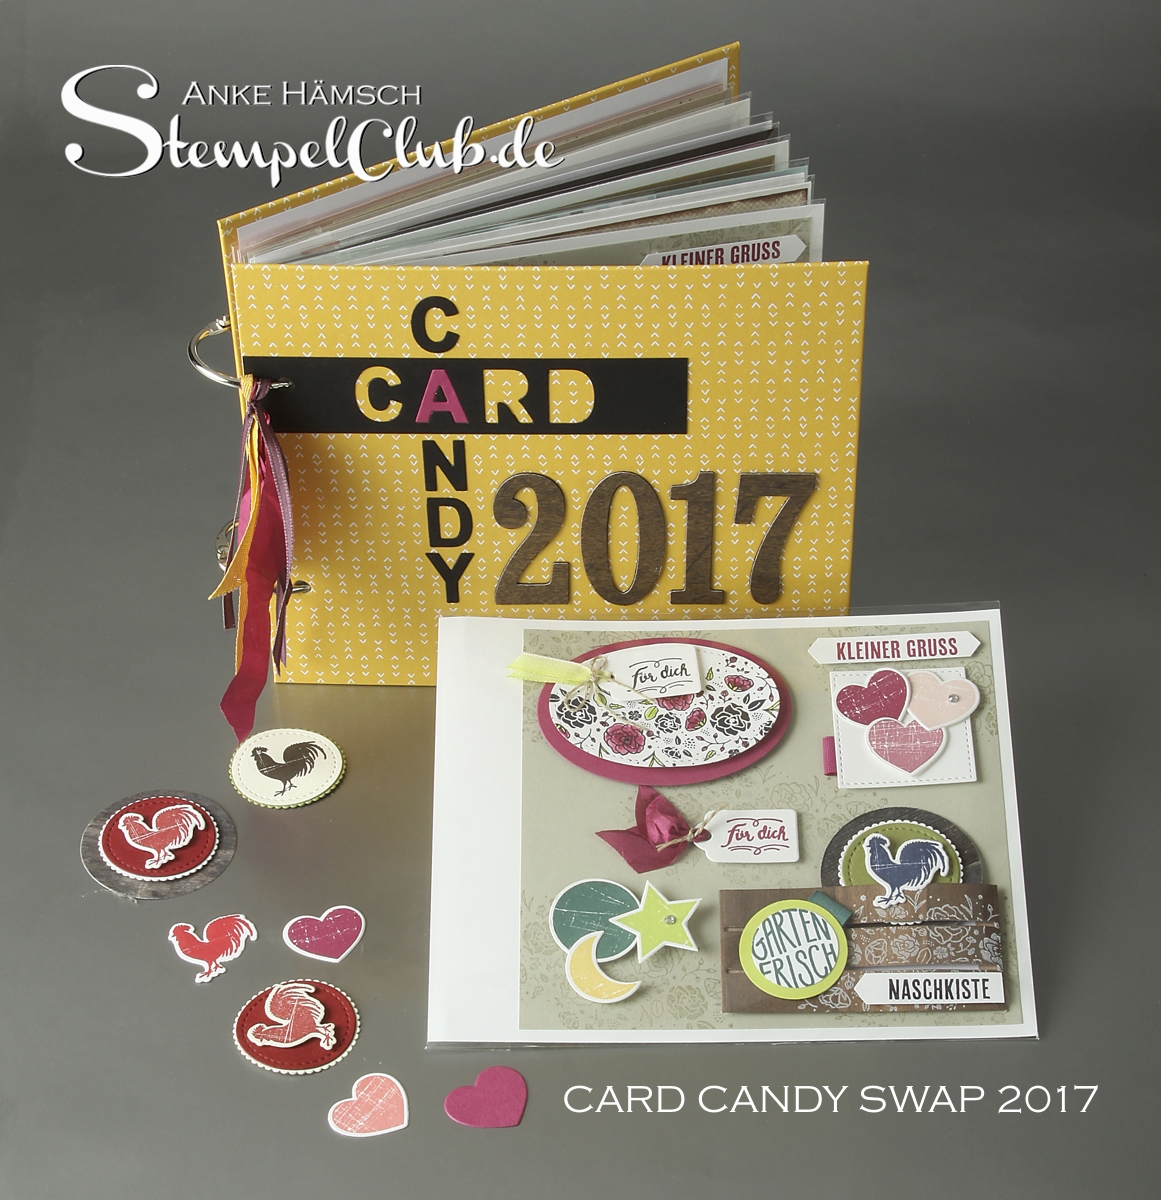 Card Candy Swap mit dem Produktpaket Kreativkiste, Wood Words von Stampin Up- Minialbum